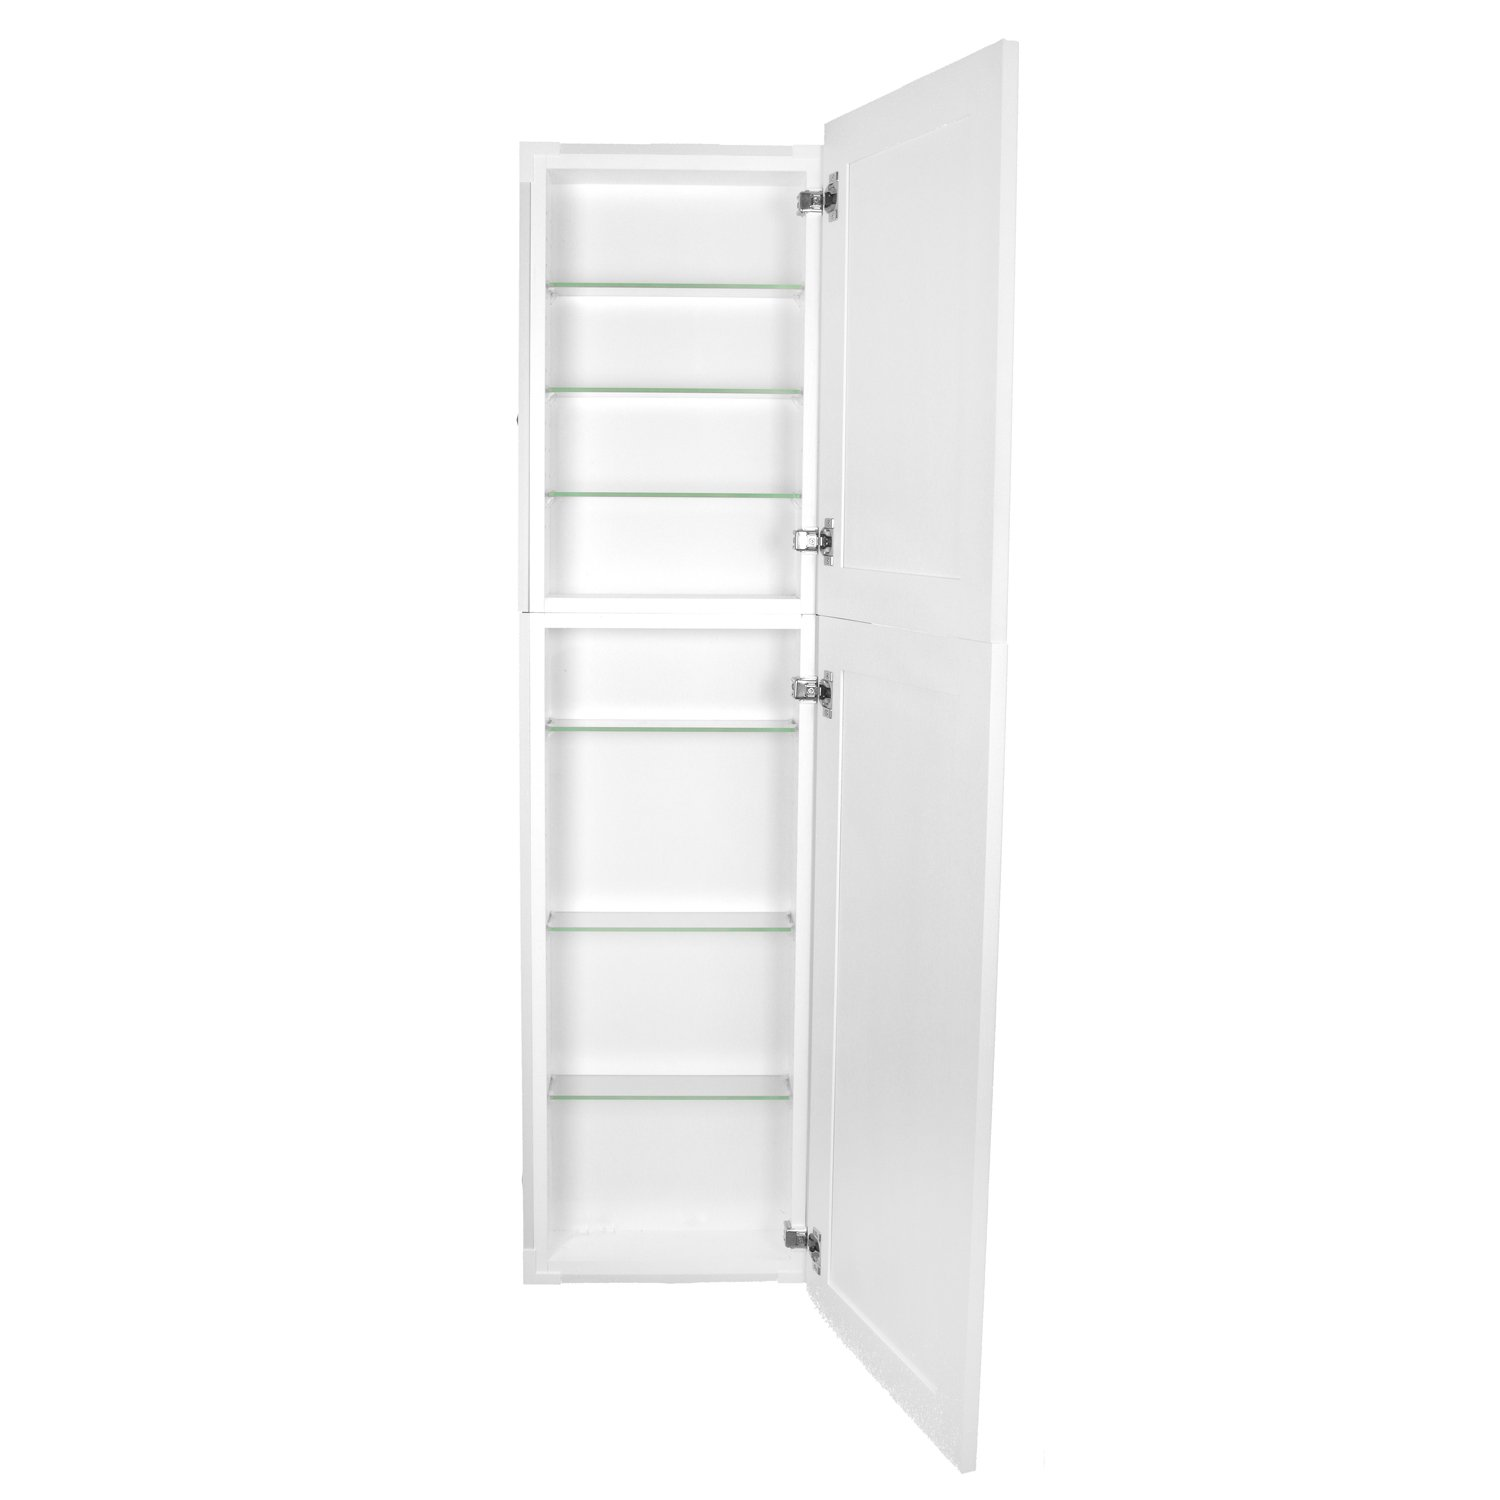 WG Wood Products Shaker Style Frameless Recessed Wall Bathroom Medicine Storage Pantry Cabinet with Multiple Finishes, 50'', White Enamel by WG Wood Products